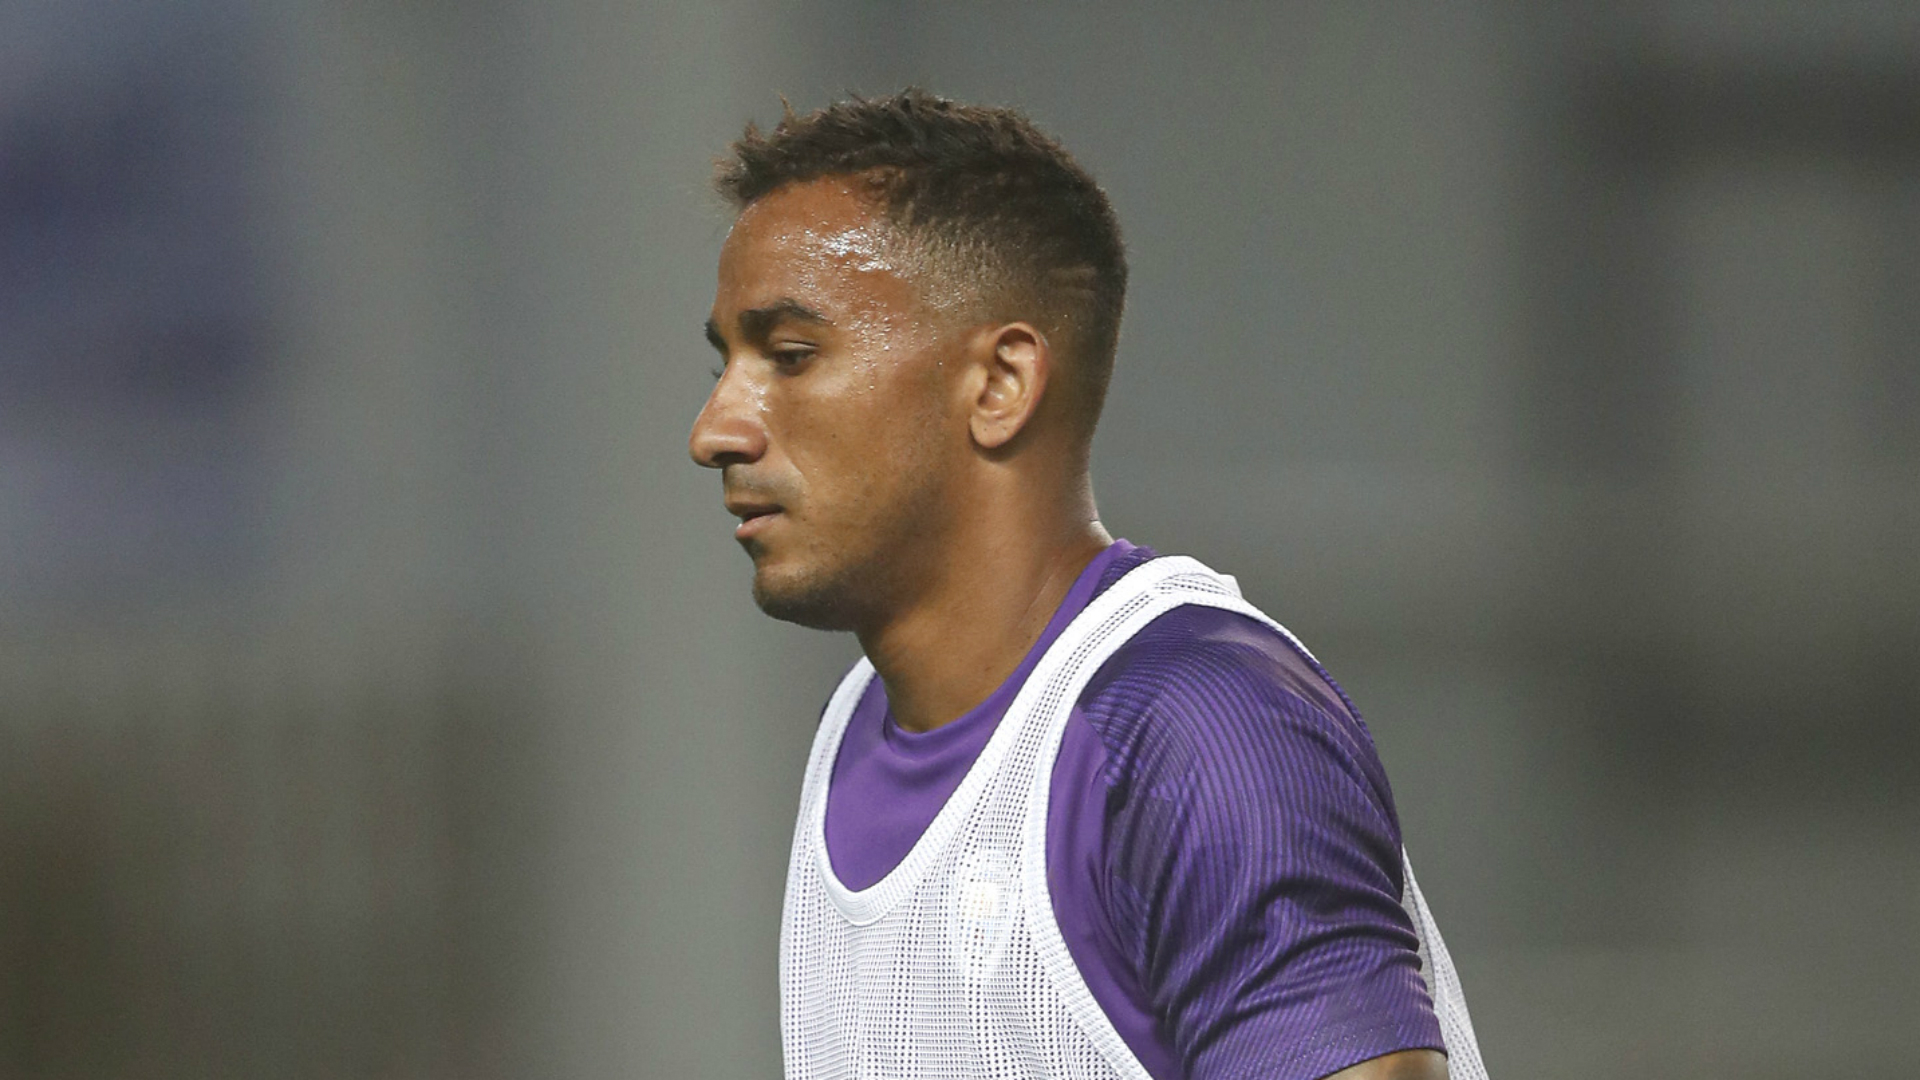 New Juventus signing Danilo relishing chance to work with Ronaldo and Sarri